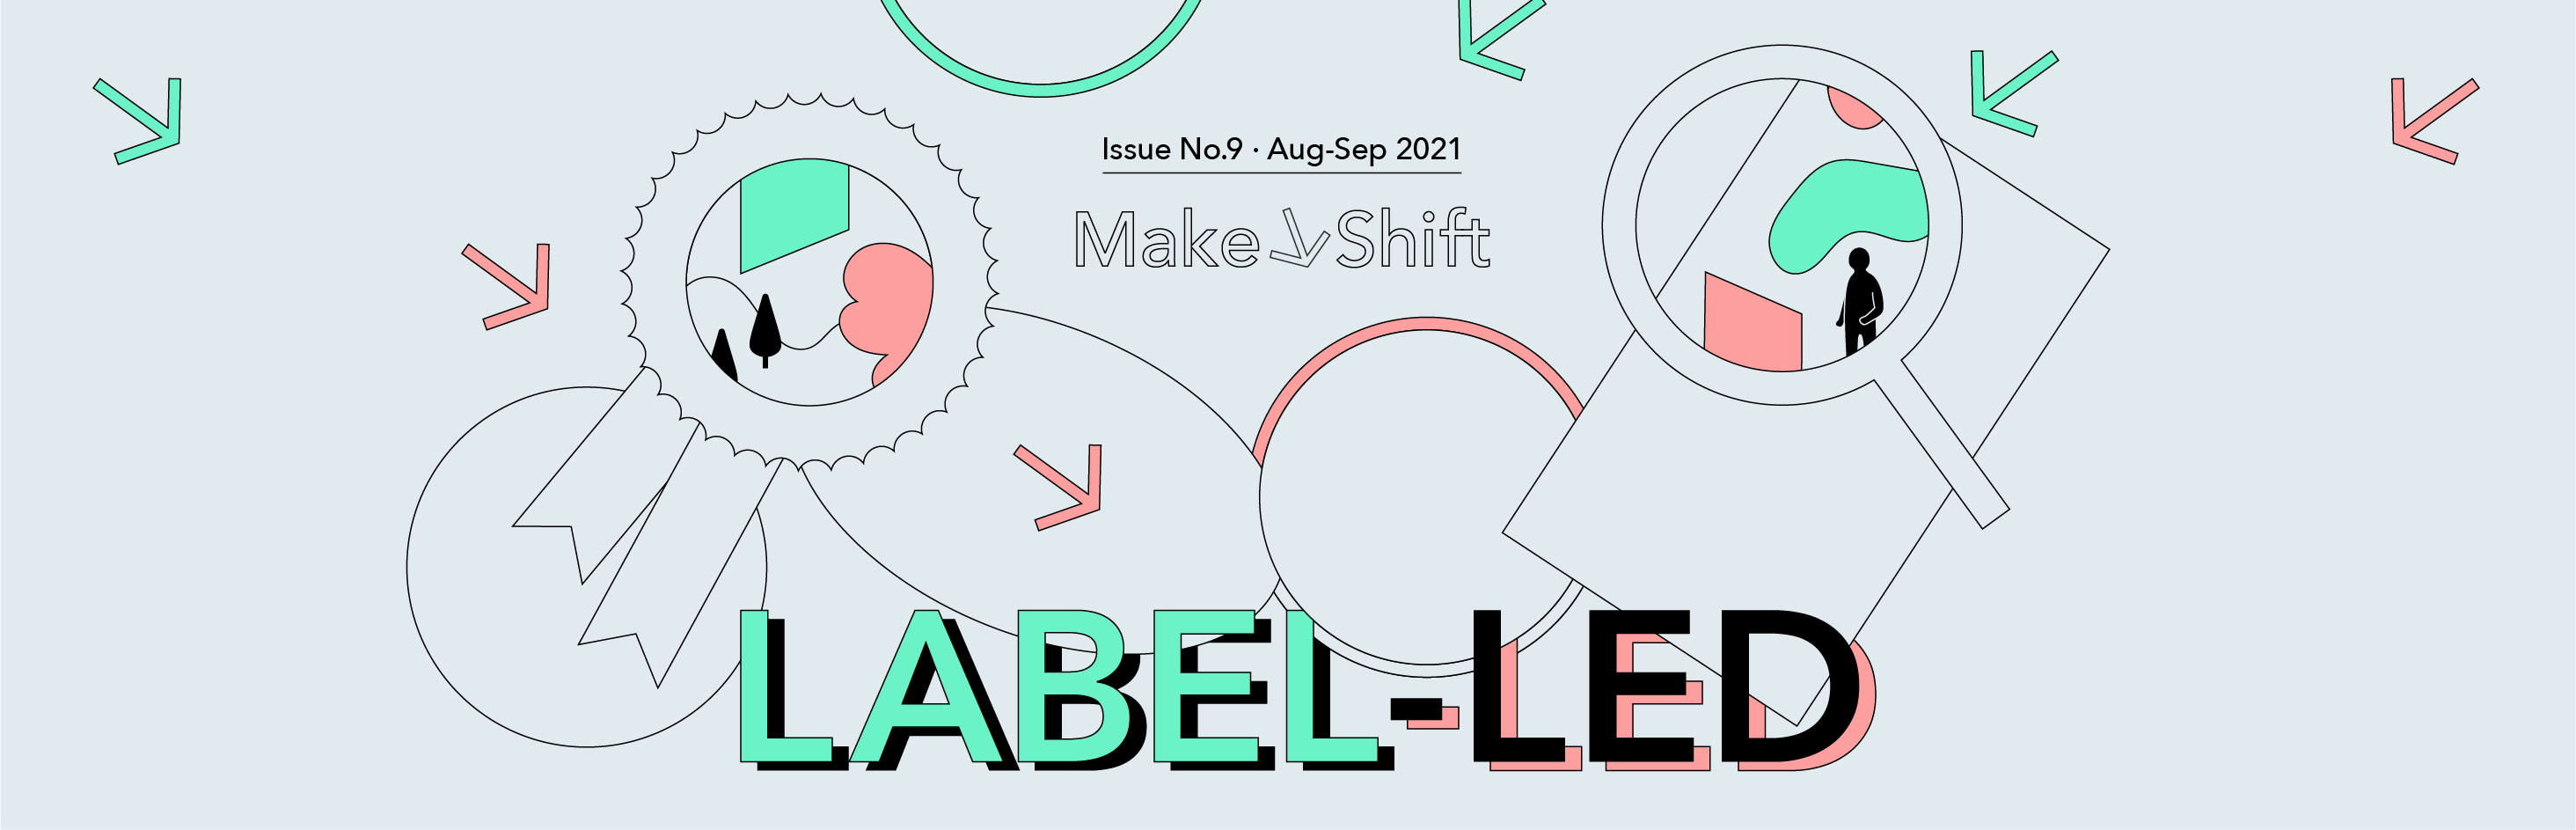 Cartoon graphic of a looking glass and a ribbon, highlighting the August and September issue of MakeShift, titled Label-led